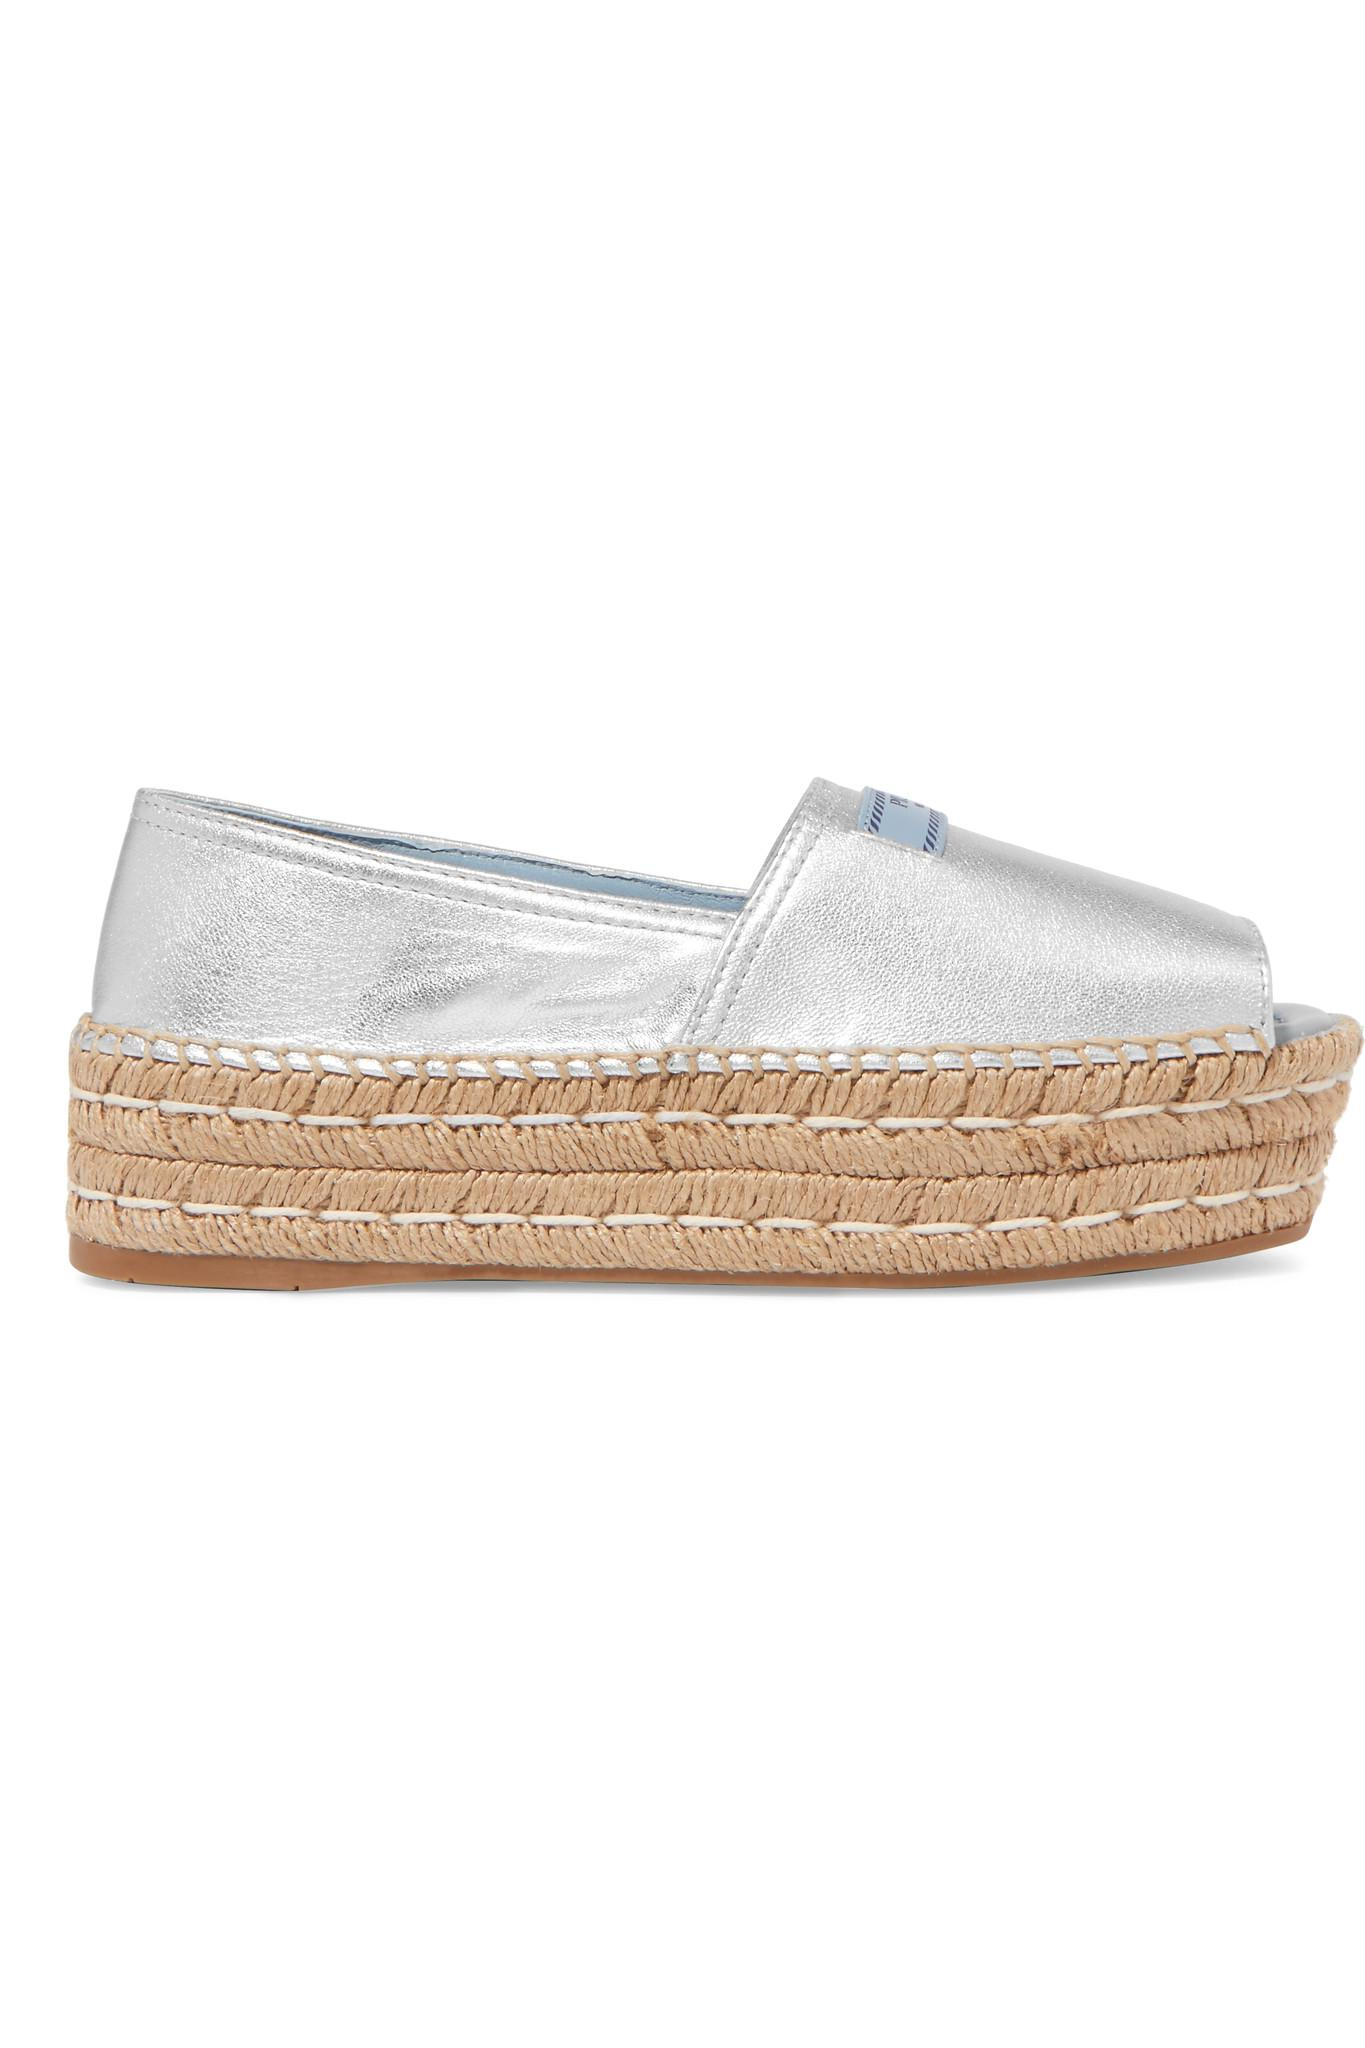 Cheap Footlocker Pictures Espadrilles - Glac Excellent Clearance Popular Free Shipping Huge Surprise 9ML8oXC